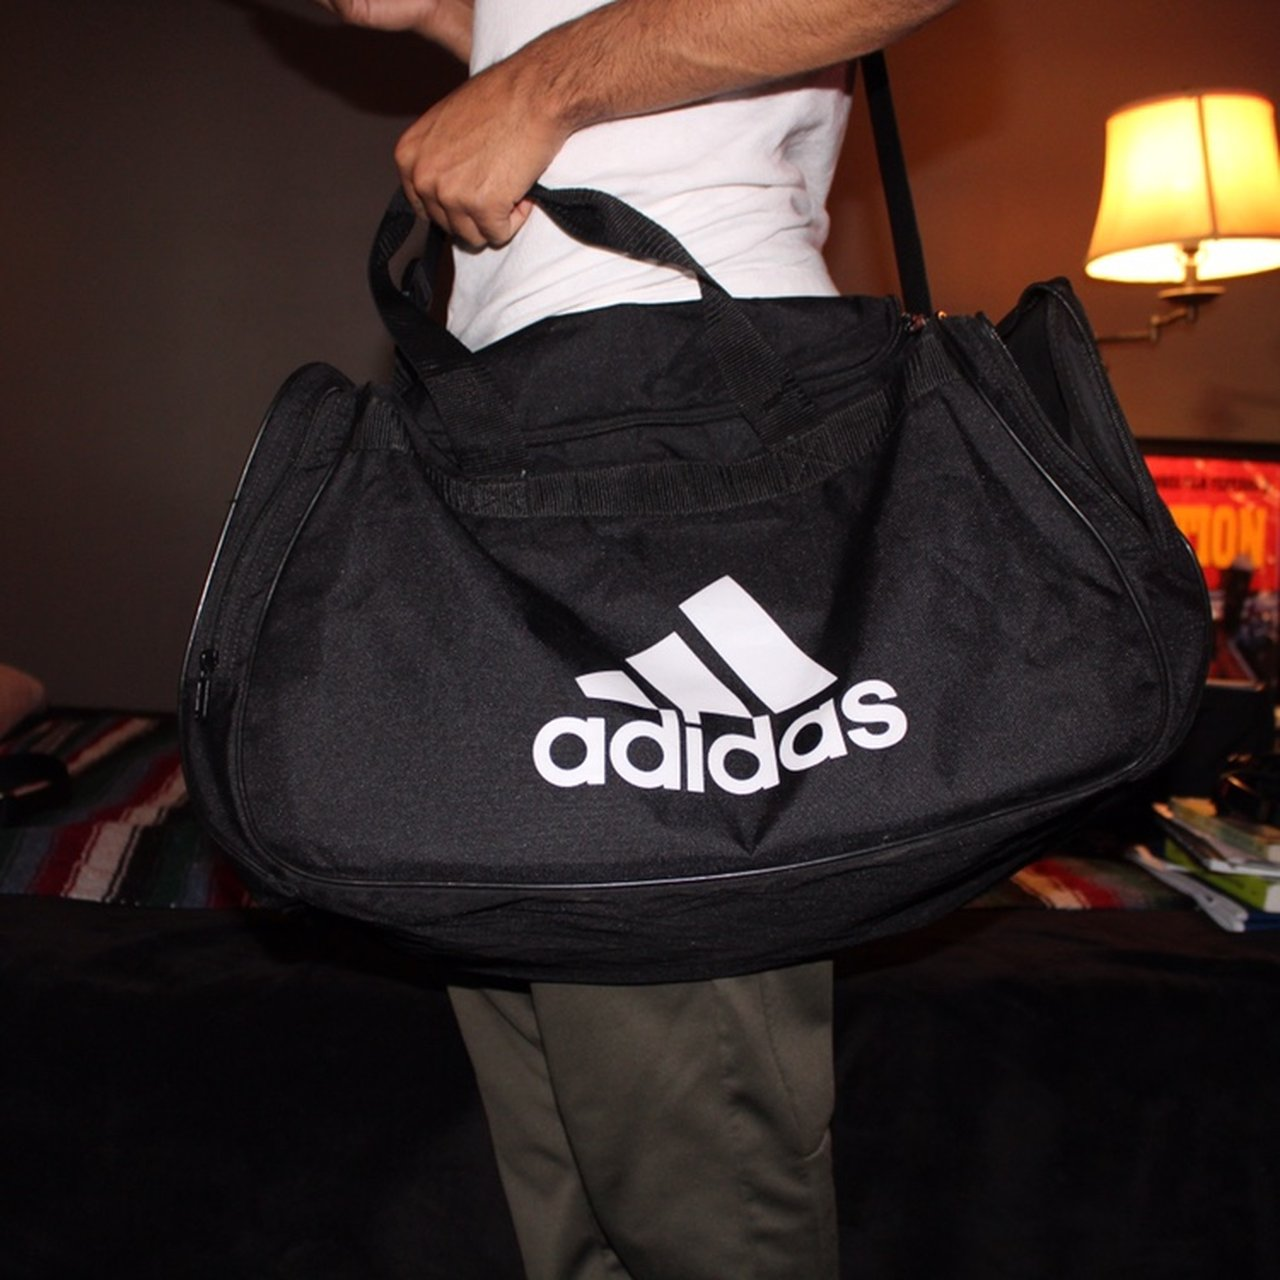 4d185f0d5545 Large Adidas Gym bag in black. Great Condition. Has two and - Depop